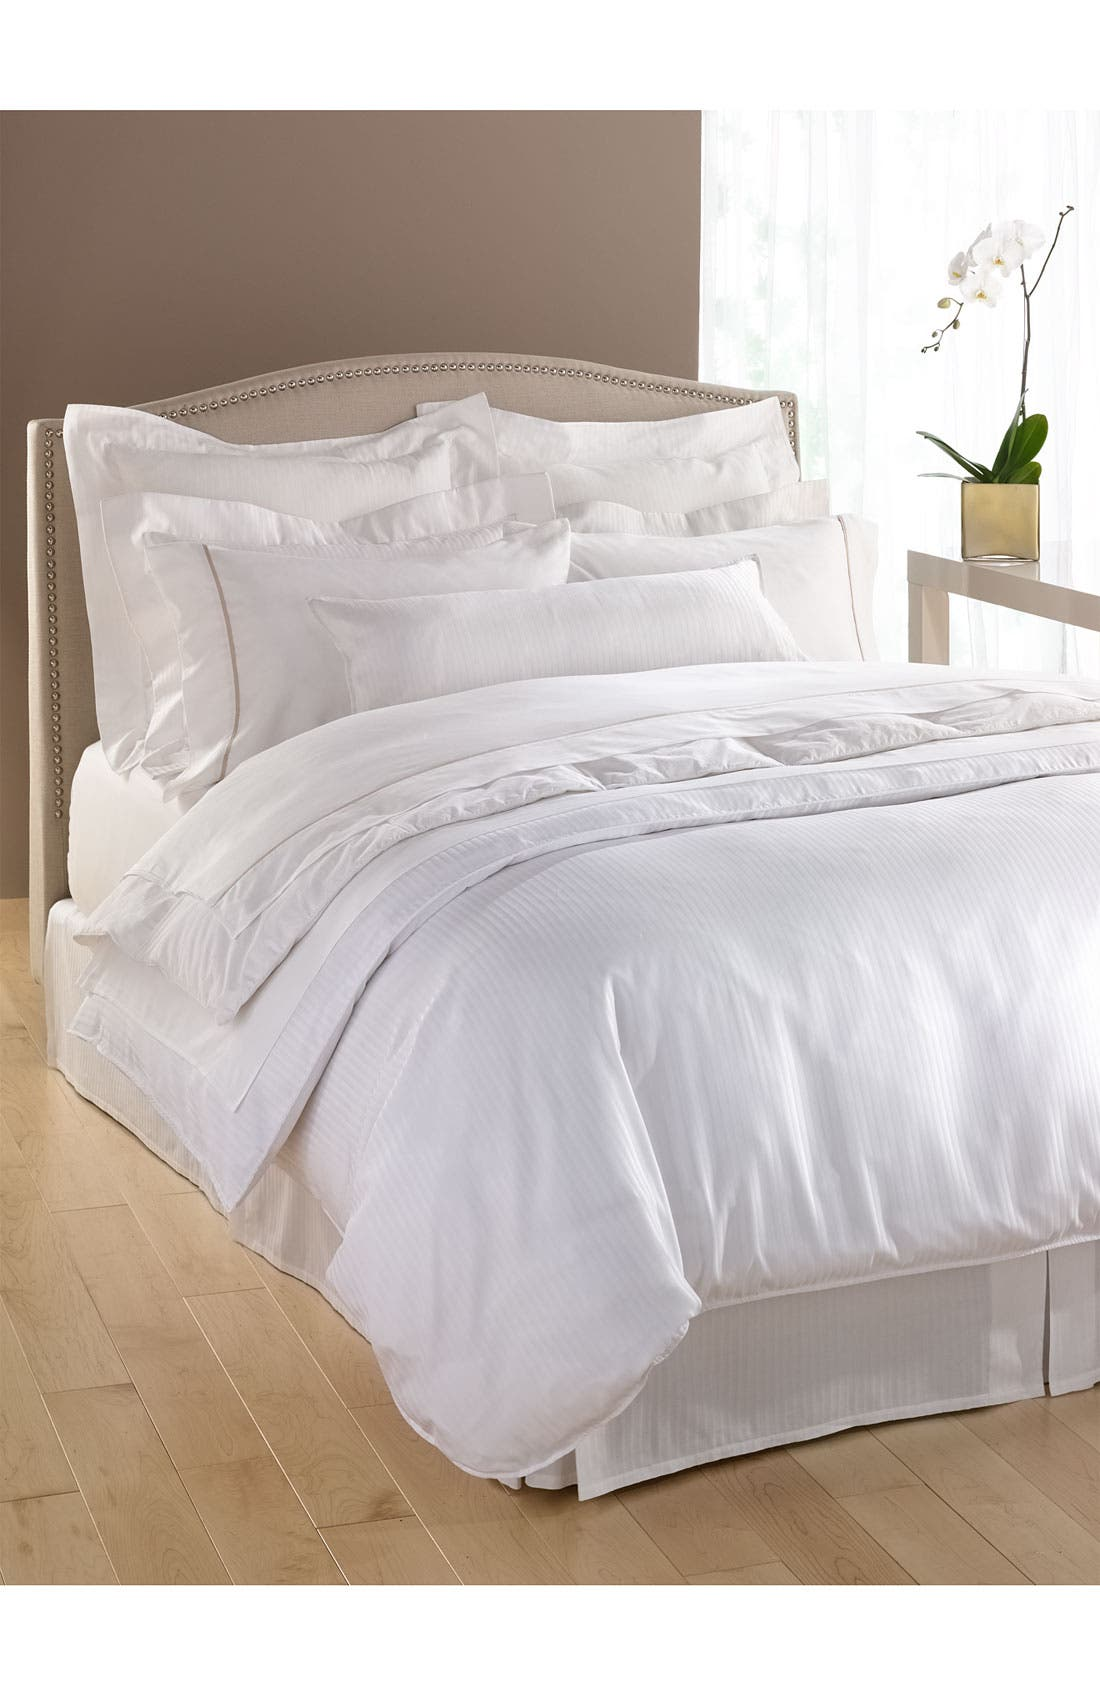 Westin Heavenly Bed<sup>®</sup> 300 Thread Count Egyptian Cotton Luxe Pillowcase,                             Alternate thumbnail 2, color,